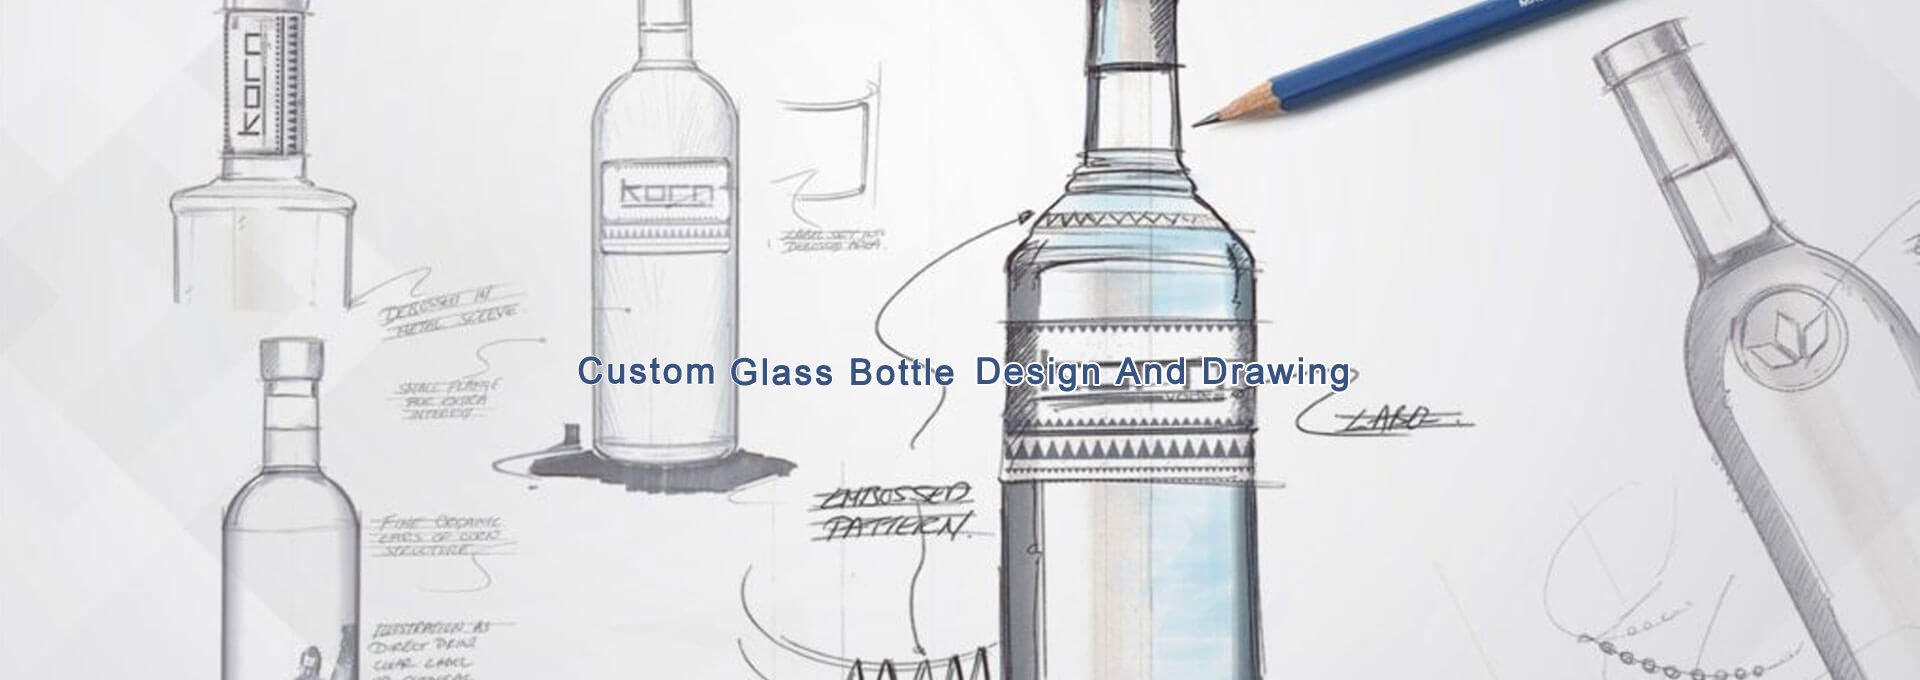 OWN YOU OWN BOTTLE : How To Make A Custom Glass Bottle Jar